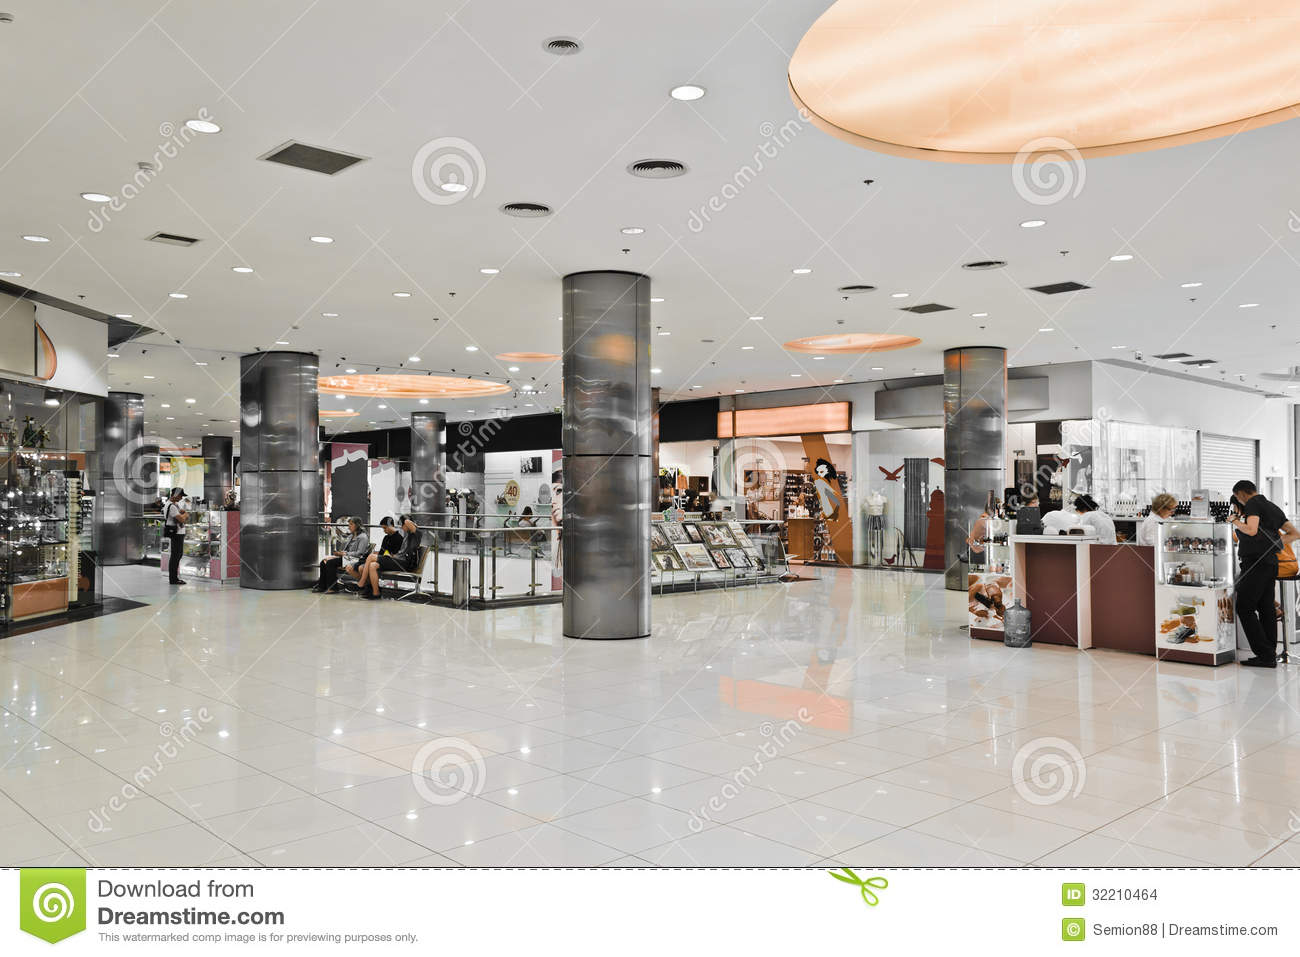 Stunning Modern Interior Mall Images - Simple Design Home - robaxin25.us